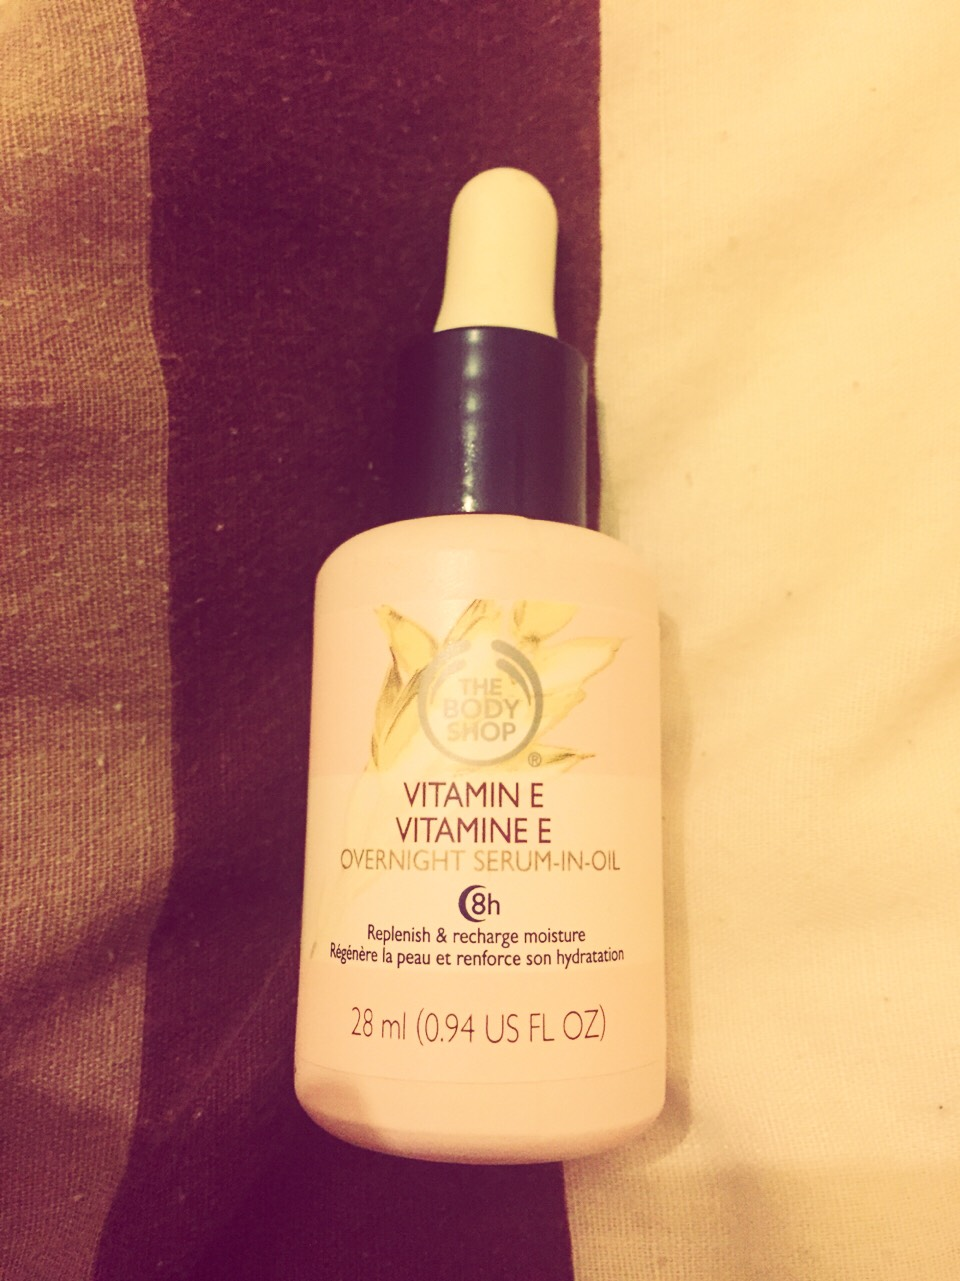 Body Shop Vitamin E Serum!  It's my beauty fav at the moment!  My skin has improved massively since using this product! I've been using this for 2 weeks every night and have seen a massive difference! I don't look as ghostly without makeup anymore, I have a glow! ...